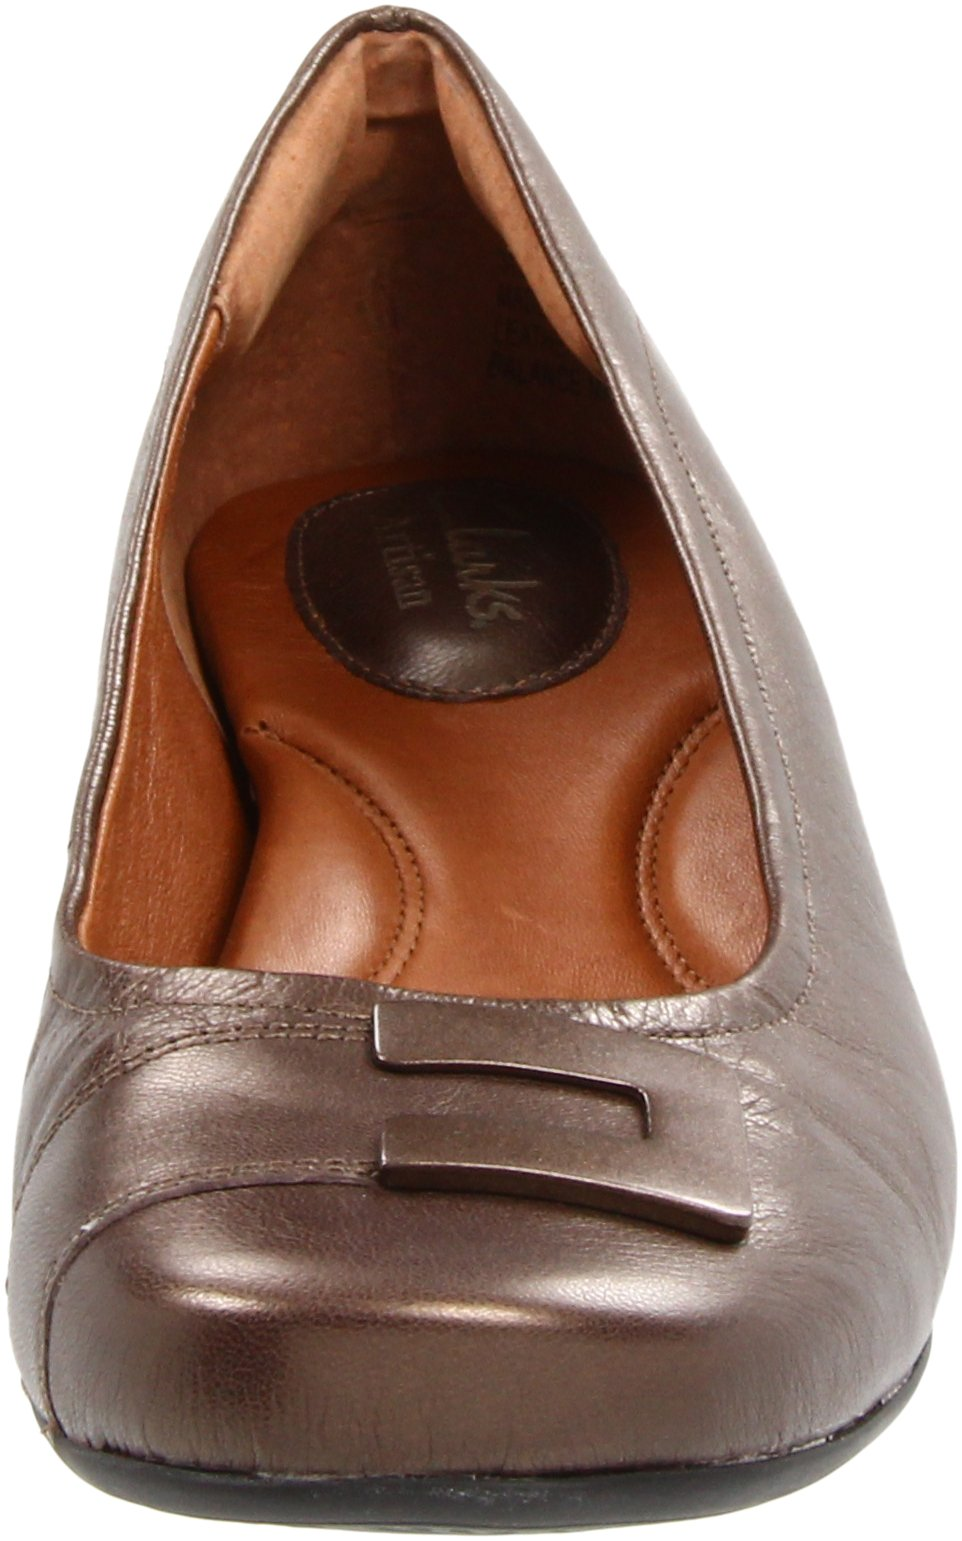 Clarks Women's Concert Choir Dress Shoes,Brown Metallic Leather,5 M US by CLARKS (Image #4)